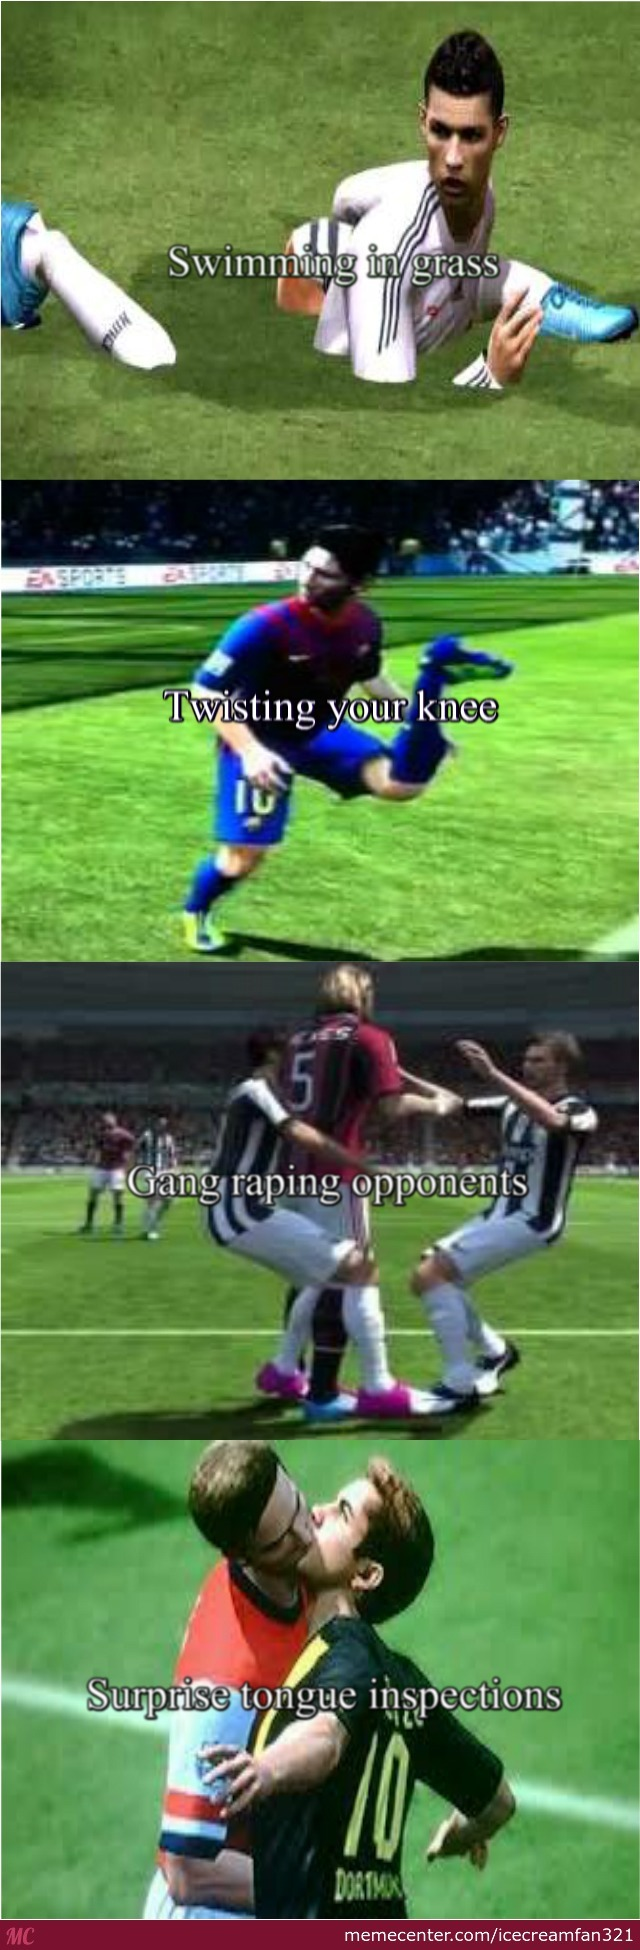 Justfifathings